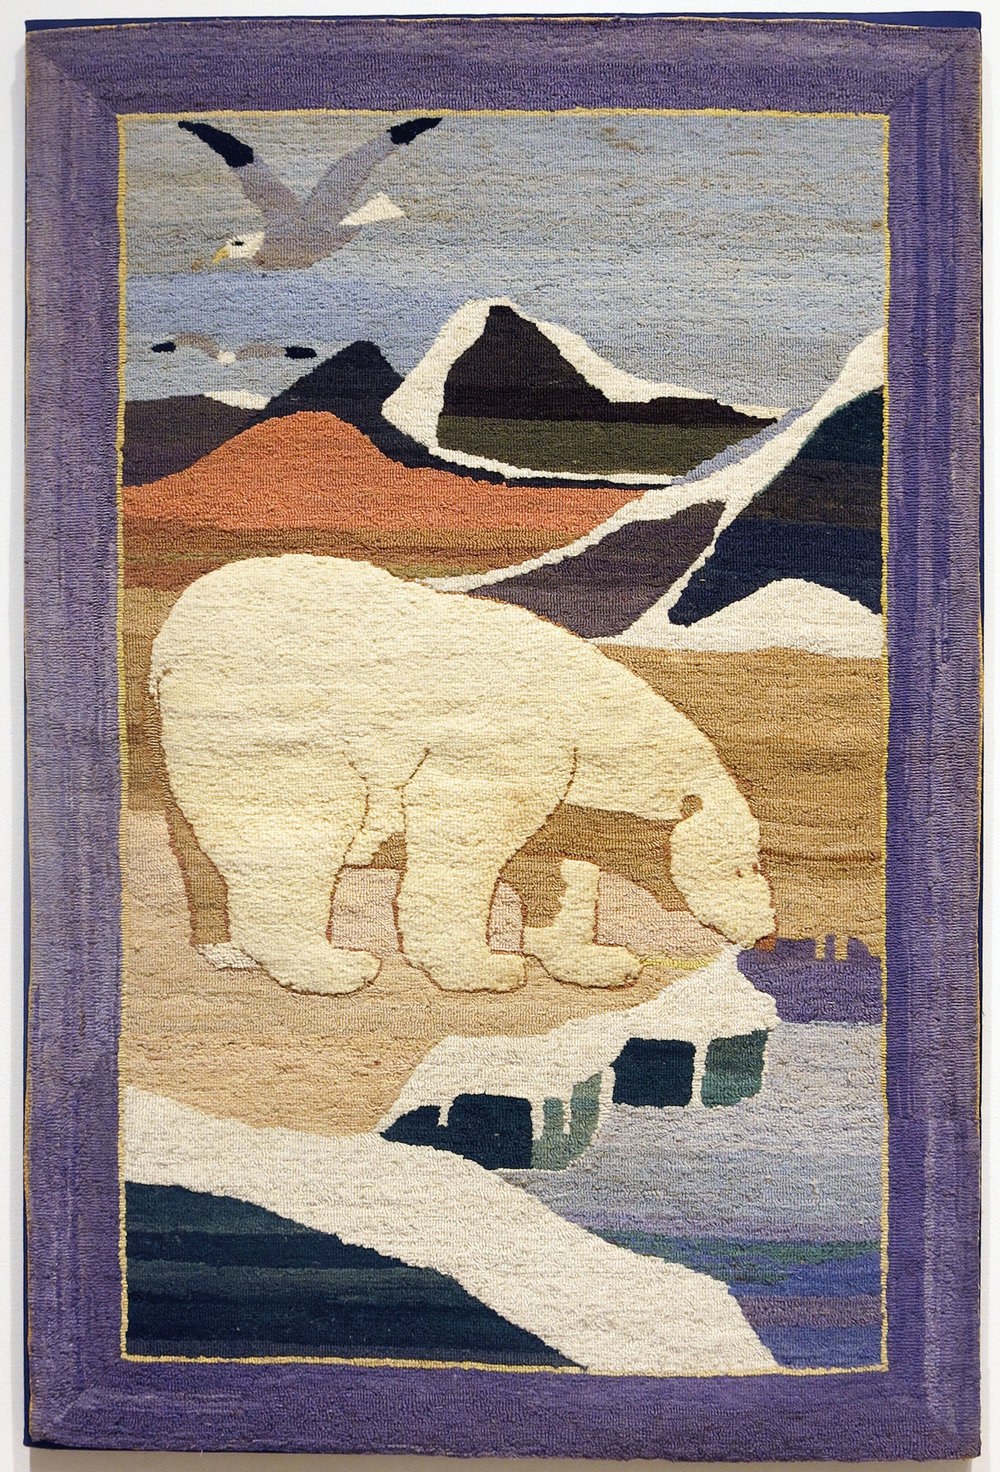 Anonymous, The Grenfell Mission, Vertical Polar Bear on Ice, c. 1939, silk, rayon, cotton, and velvet; dyed, 8 1/2h x 10 1/2w in.